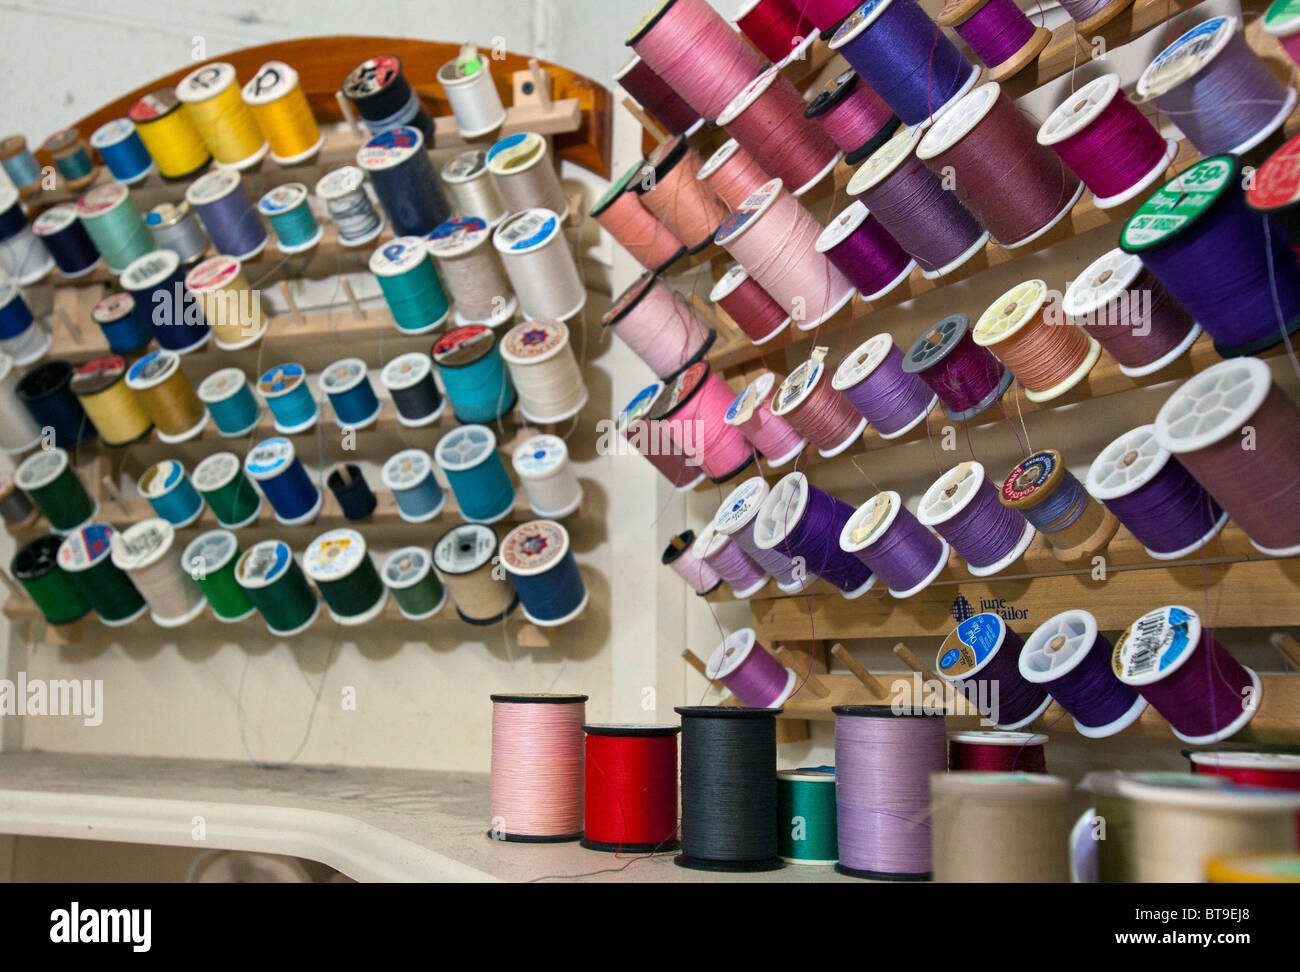 Broomfield, Colorado - Thread used for sewing and alterations at Lionheart Cleaners, a laundry and dry cleaning - Stock Image